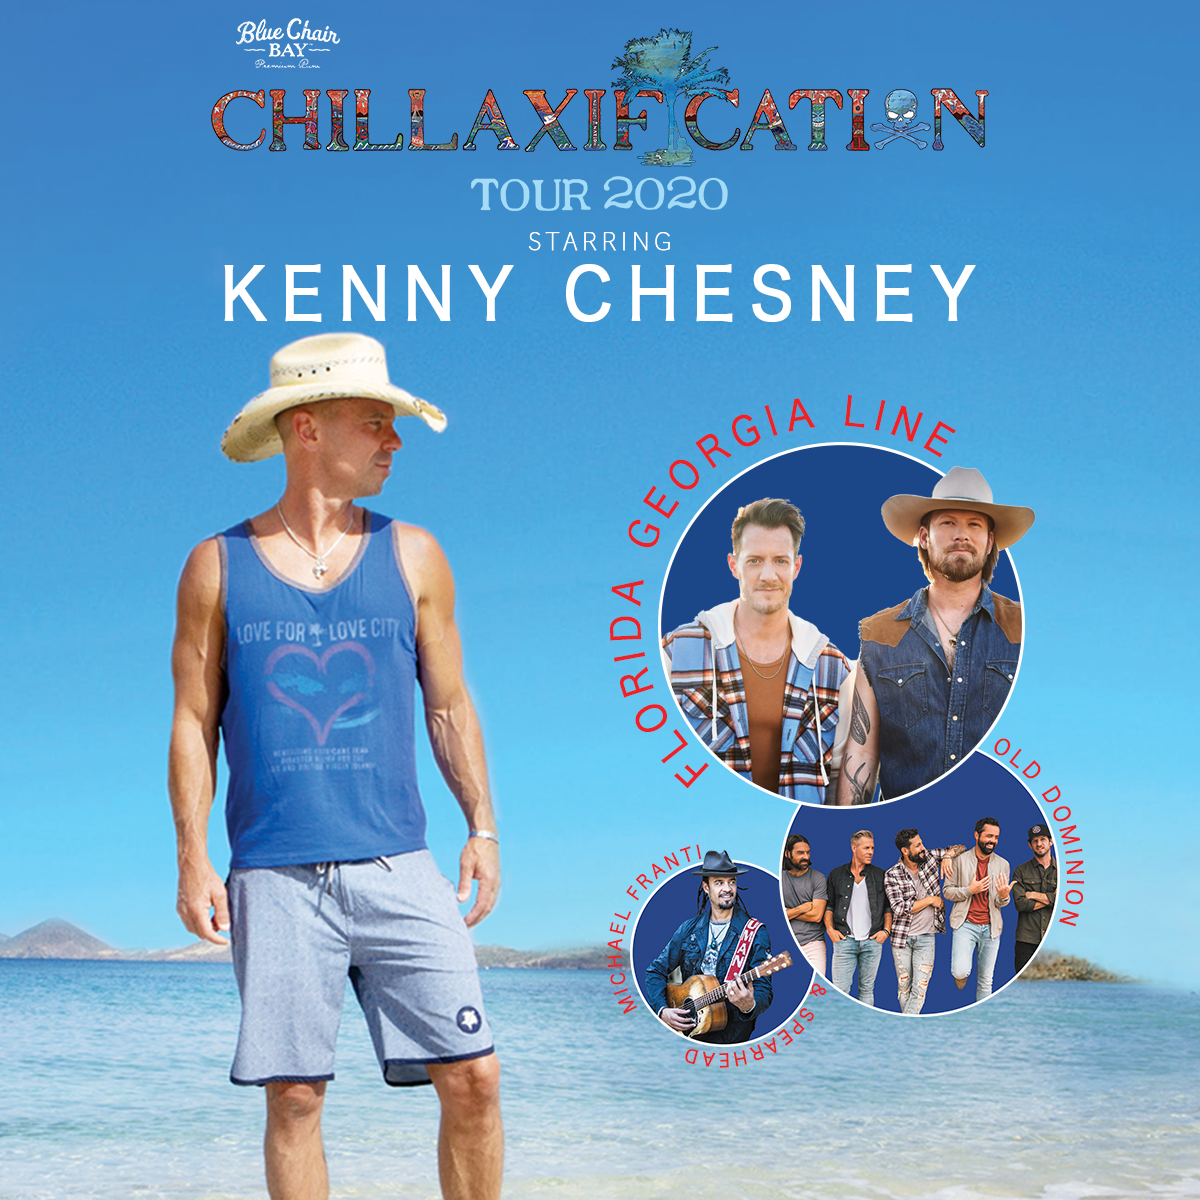 kenny-chesney-tour